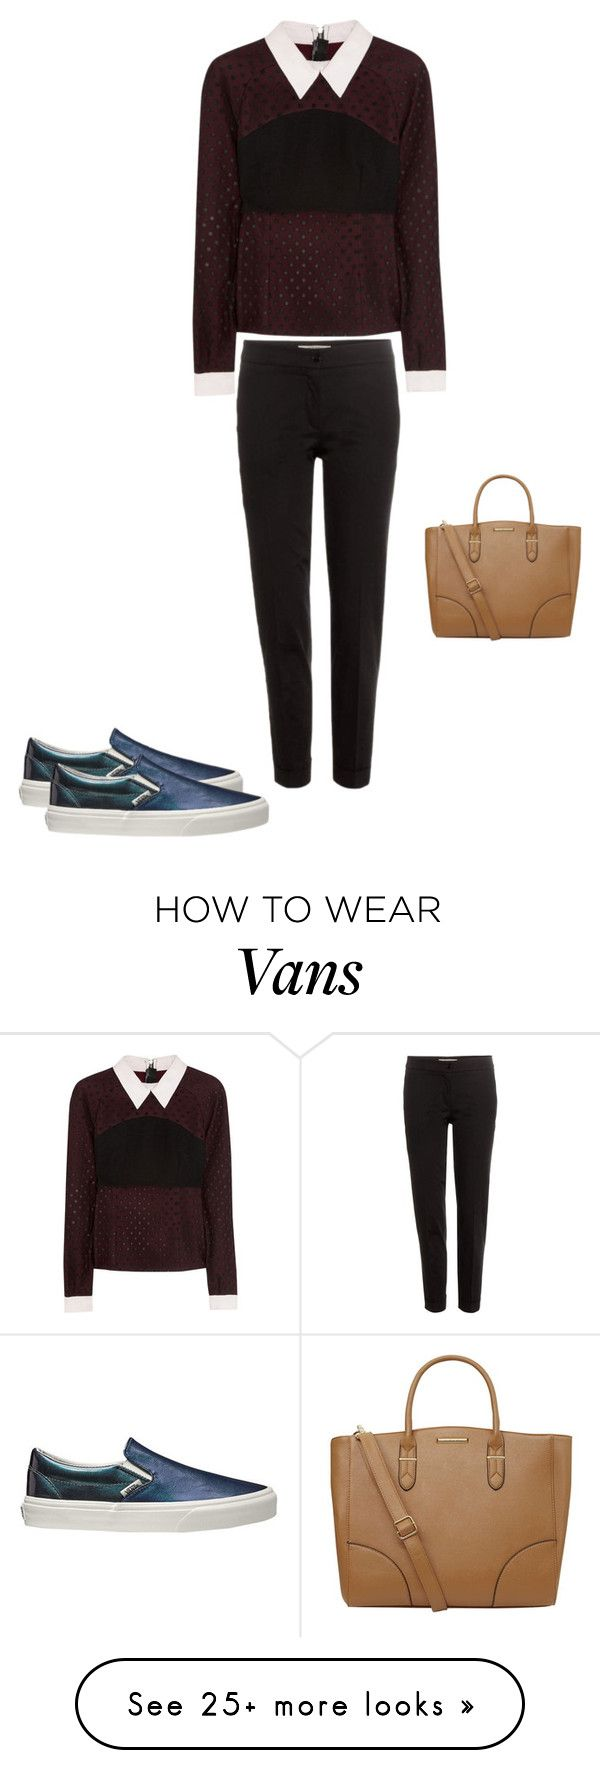 """""""Untitled #15256"""" by explorer-14576312872 on Polyvore featuring Vans, Erdem, Etro and Dorothy Perkins"""